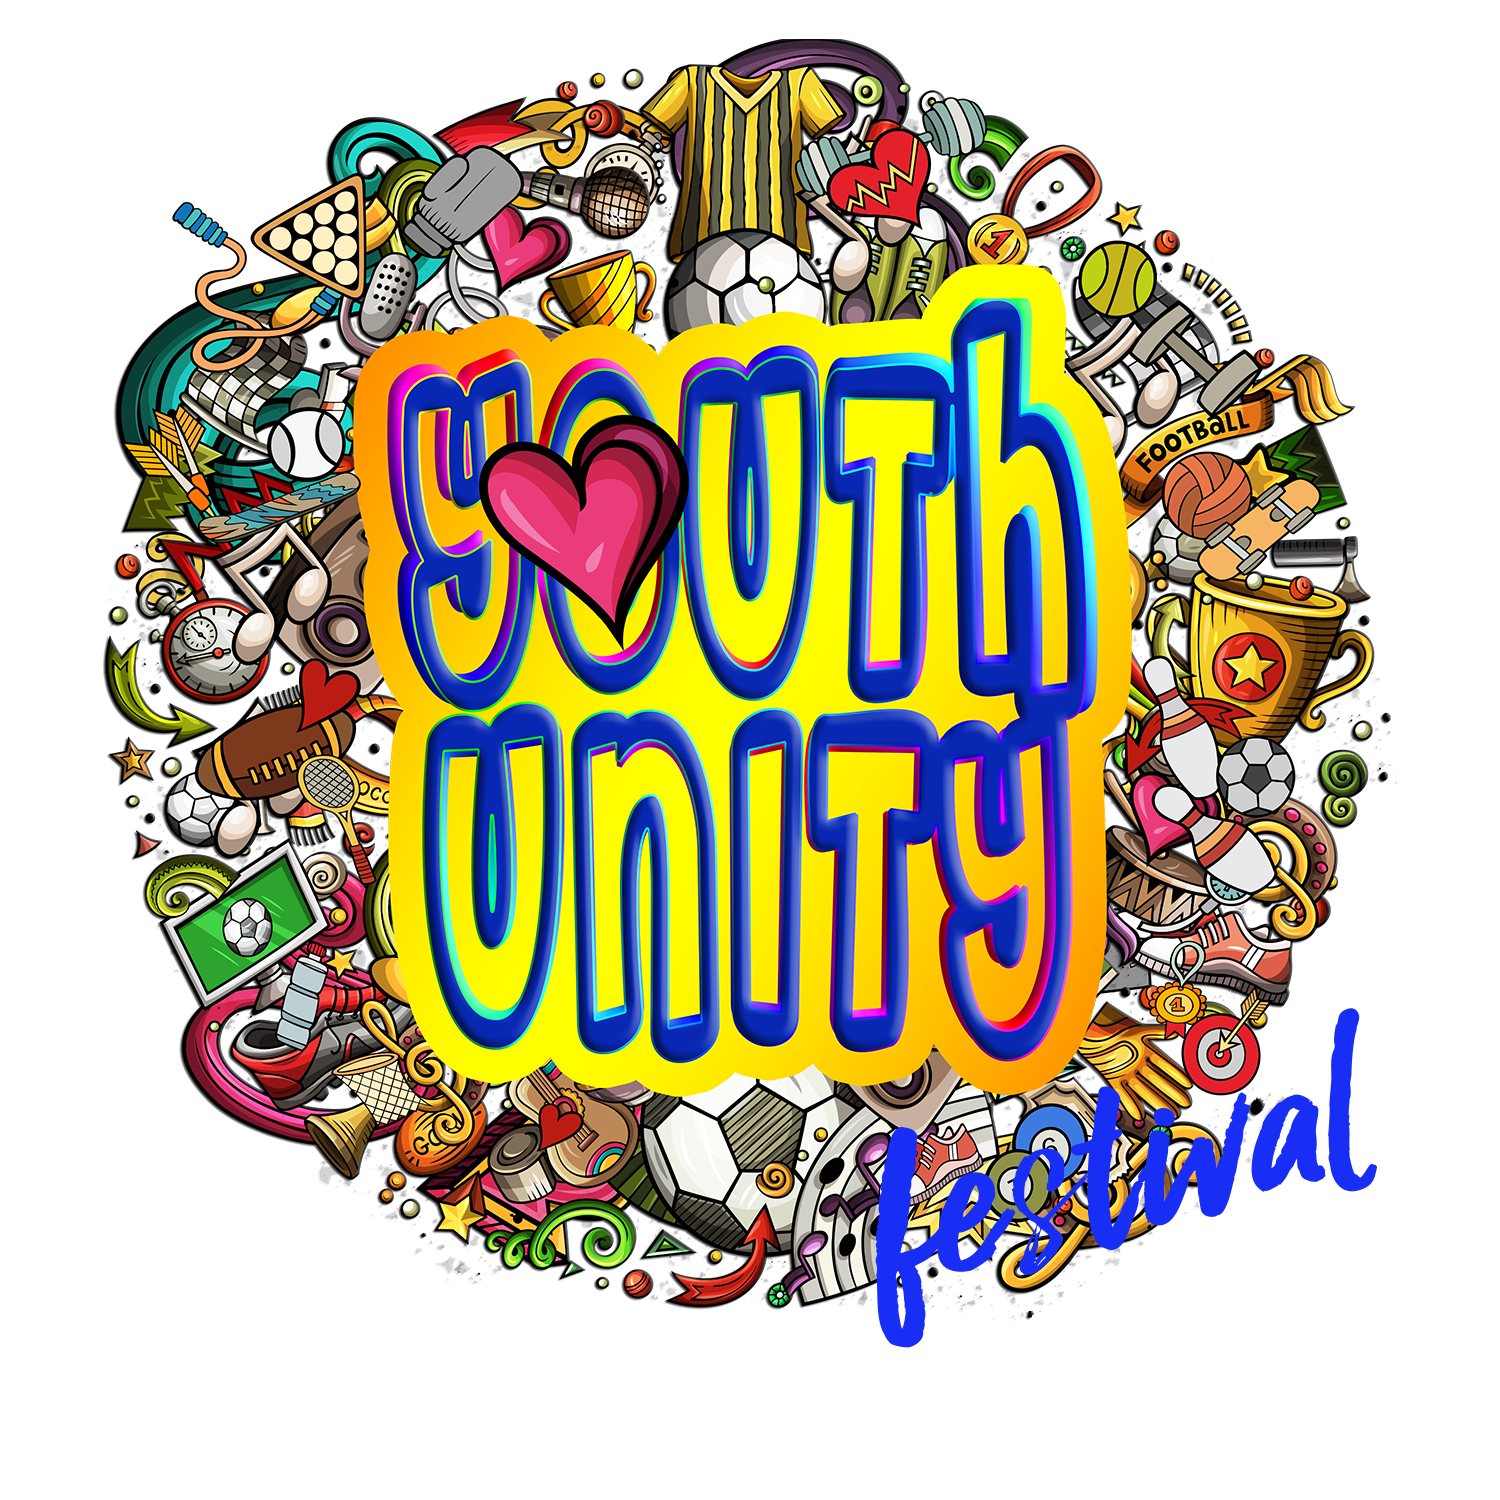 YOUTH-UNITY-WITH-FESTIVAL-WORD.png